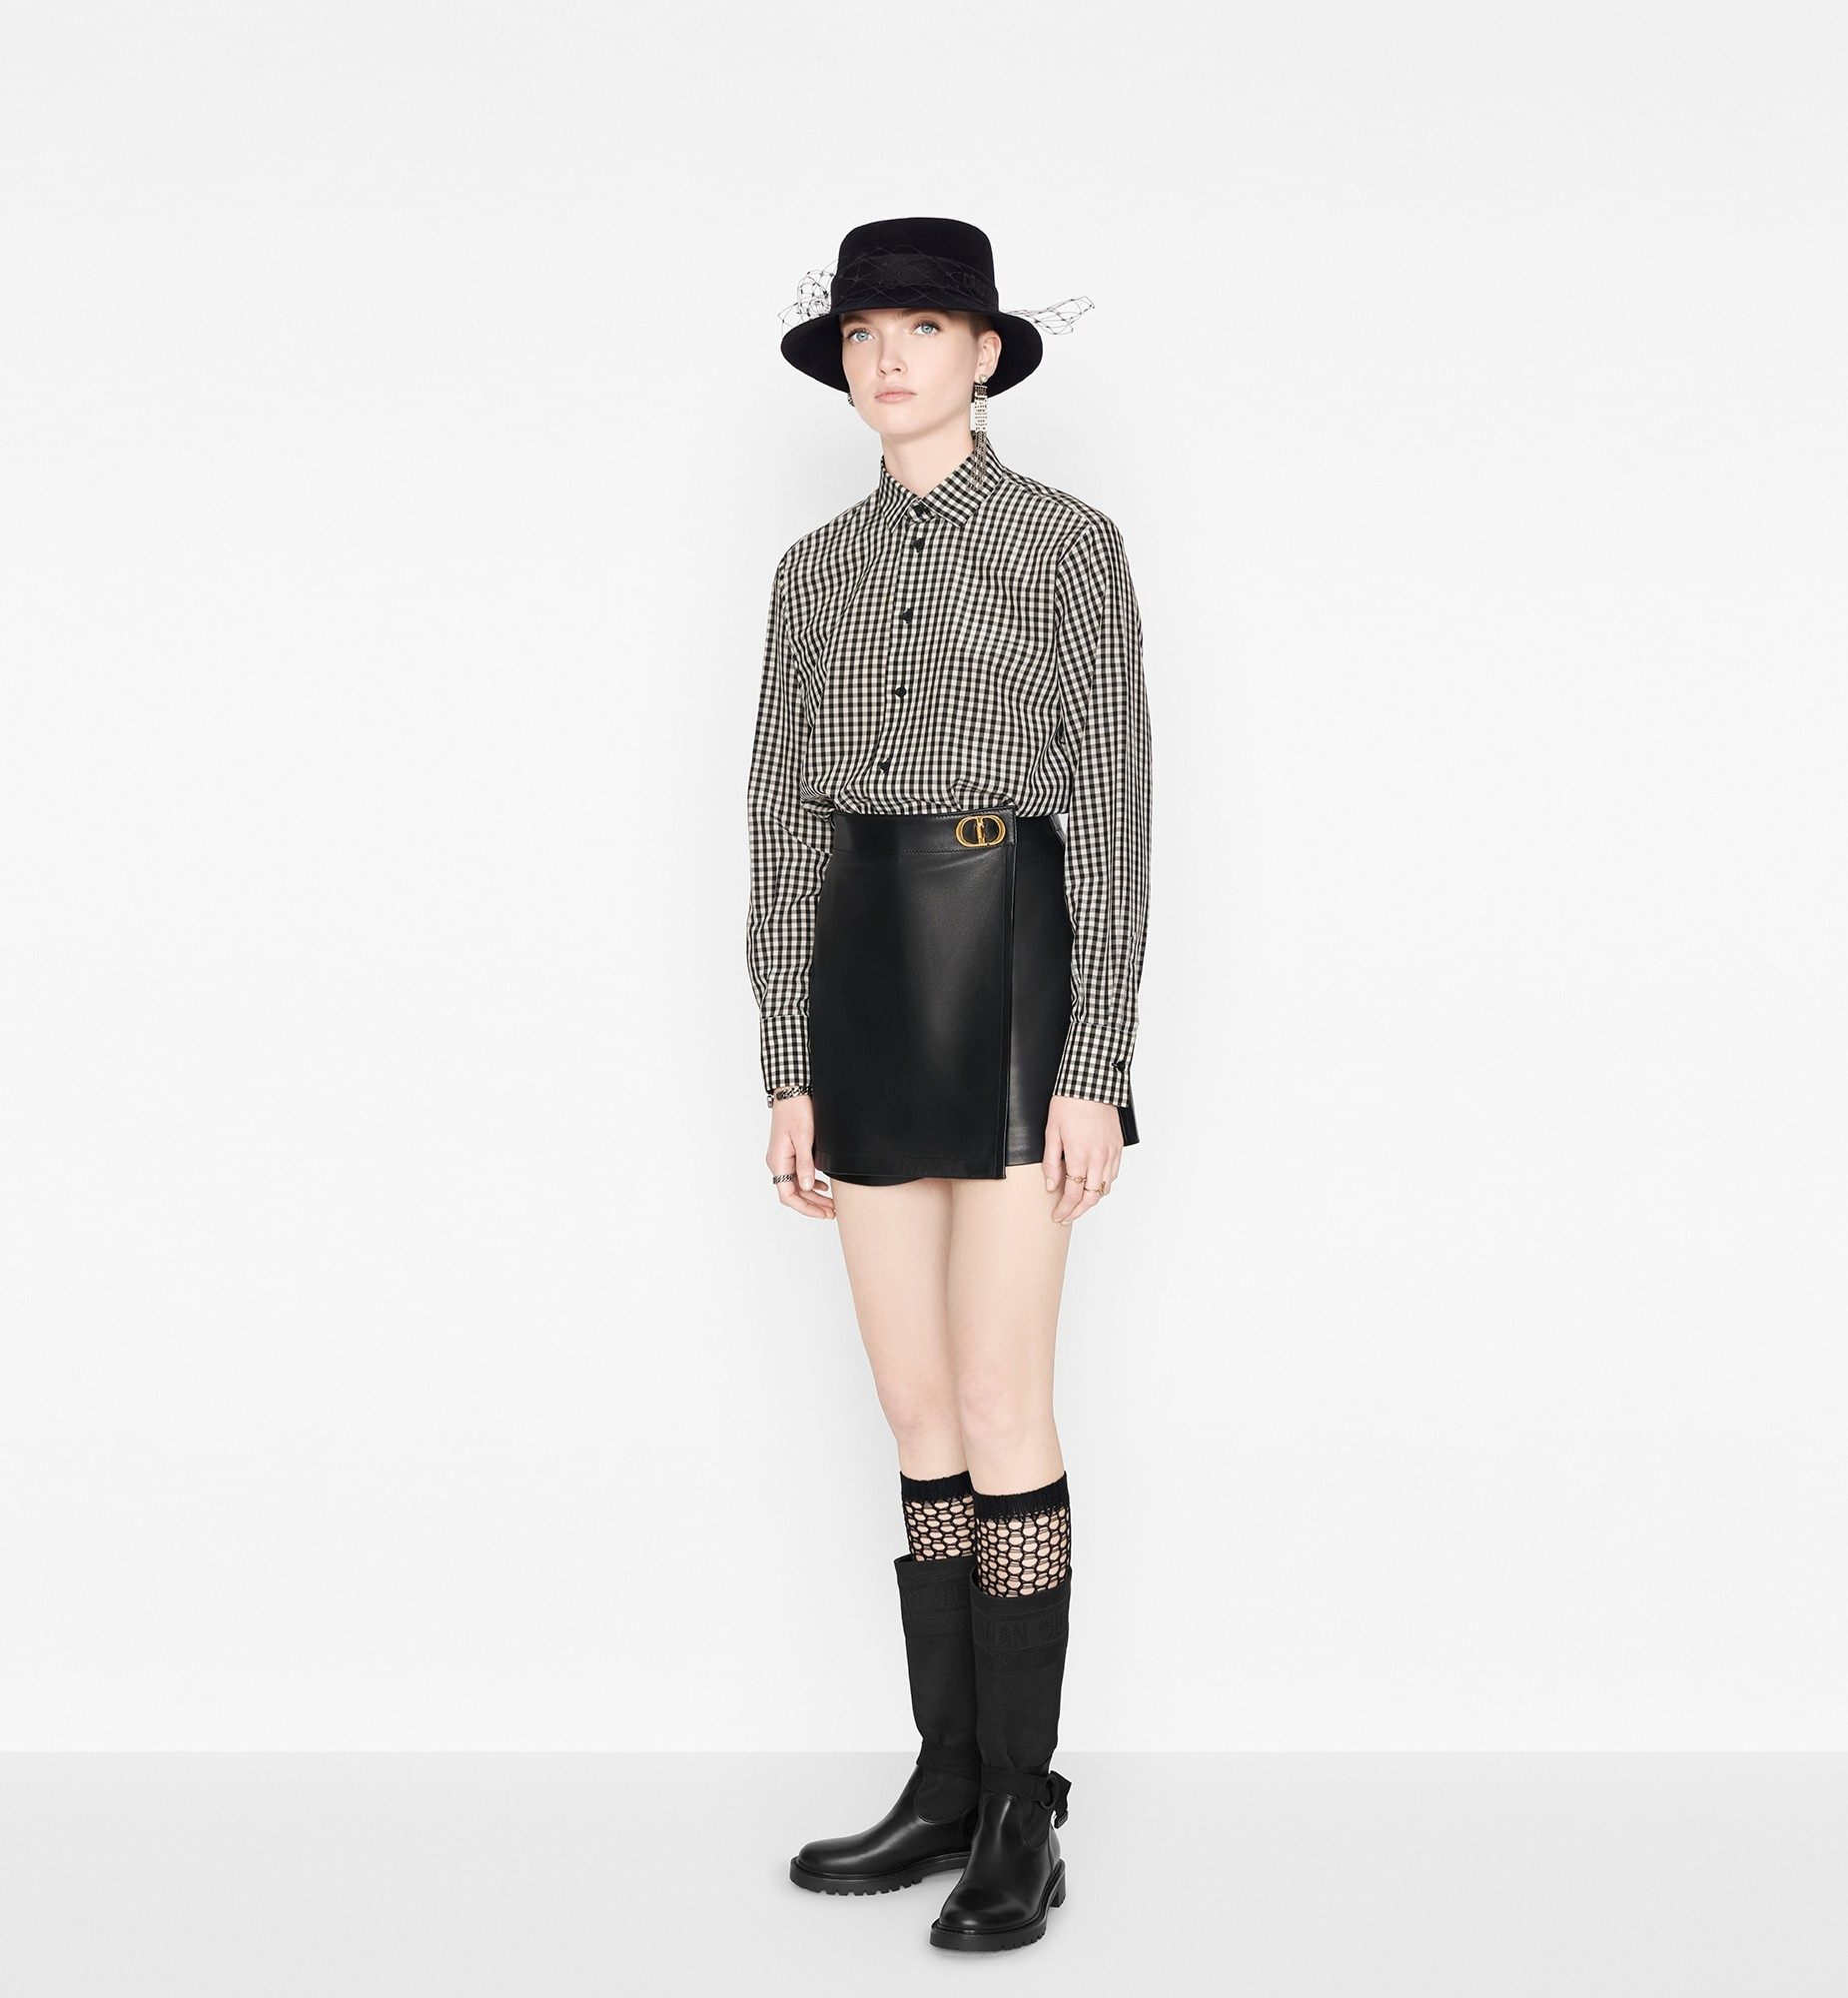 Wrap-Front Shorts with 'CD' Buckle Open gallery